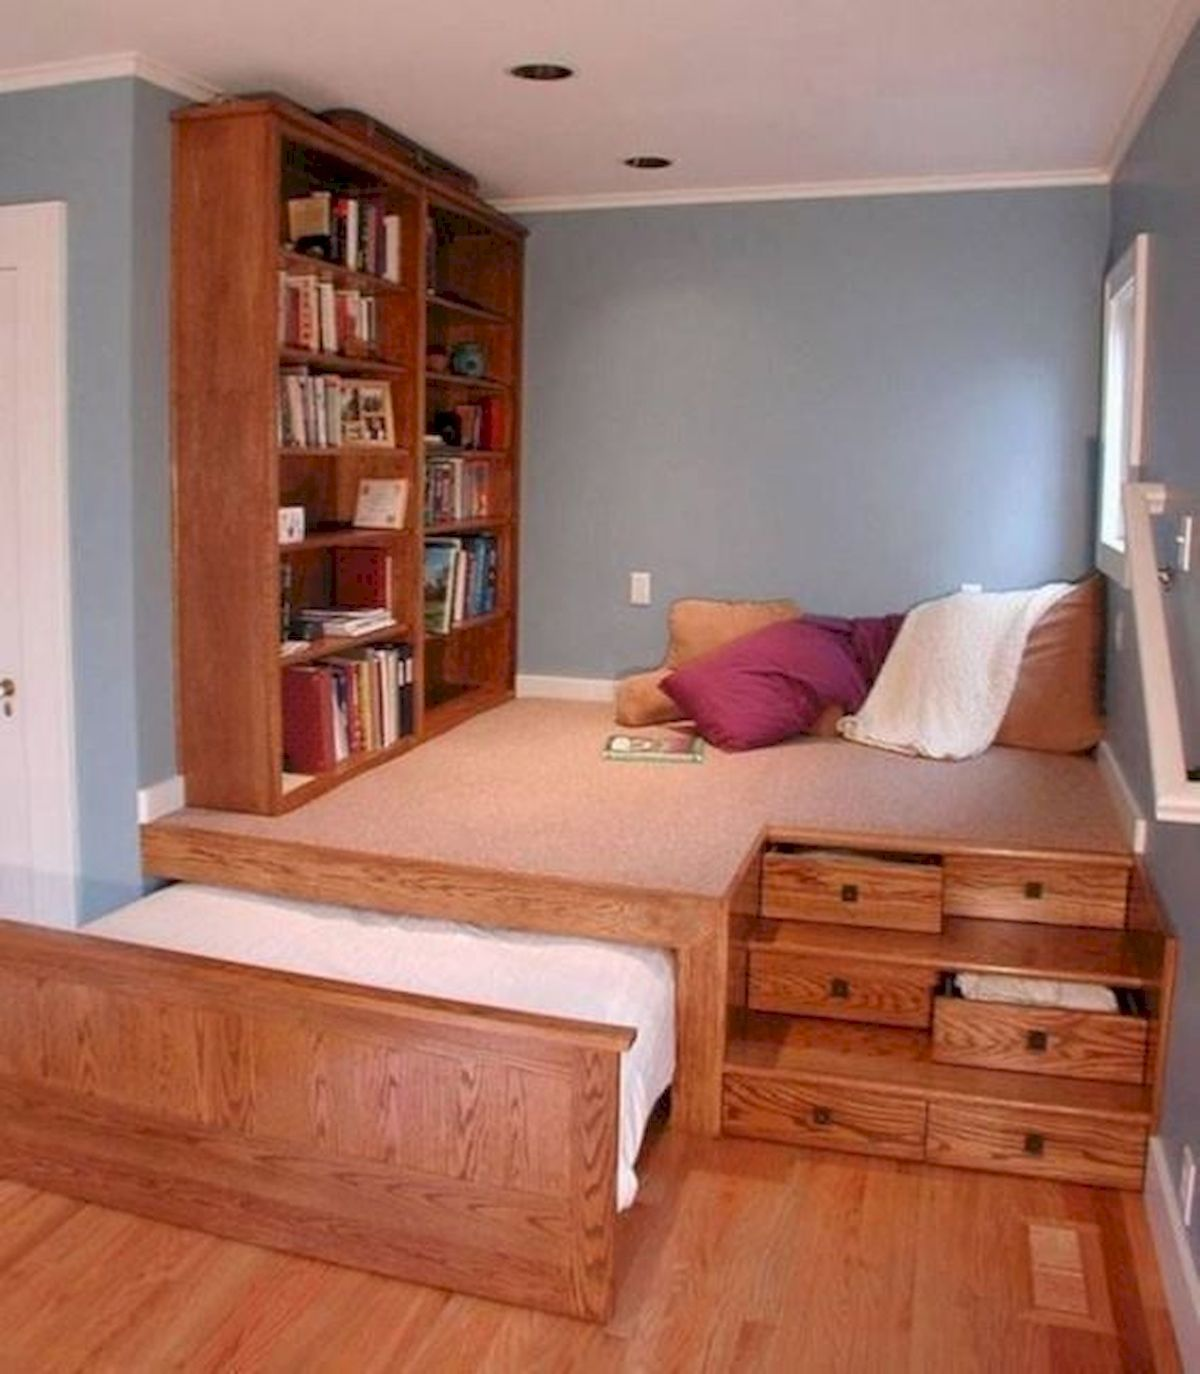 60 Brilliant Space Saving Ideas For Small Bedroom Small Room Design Diy Storage Ideas For Small Bedrooms Bedroom Furniture Design